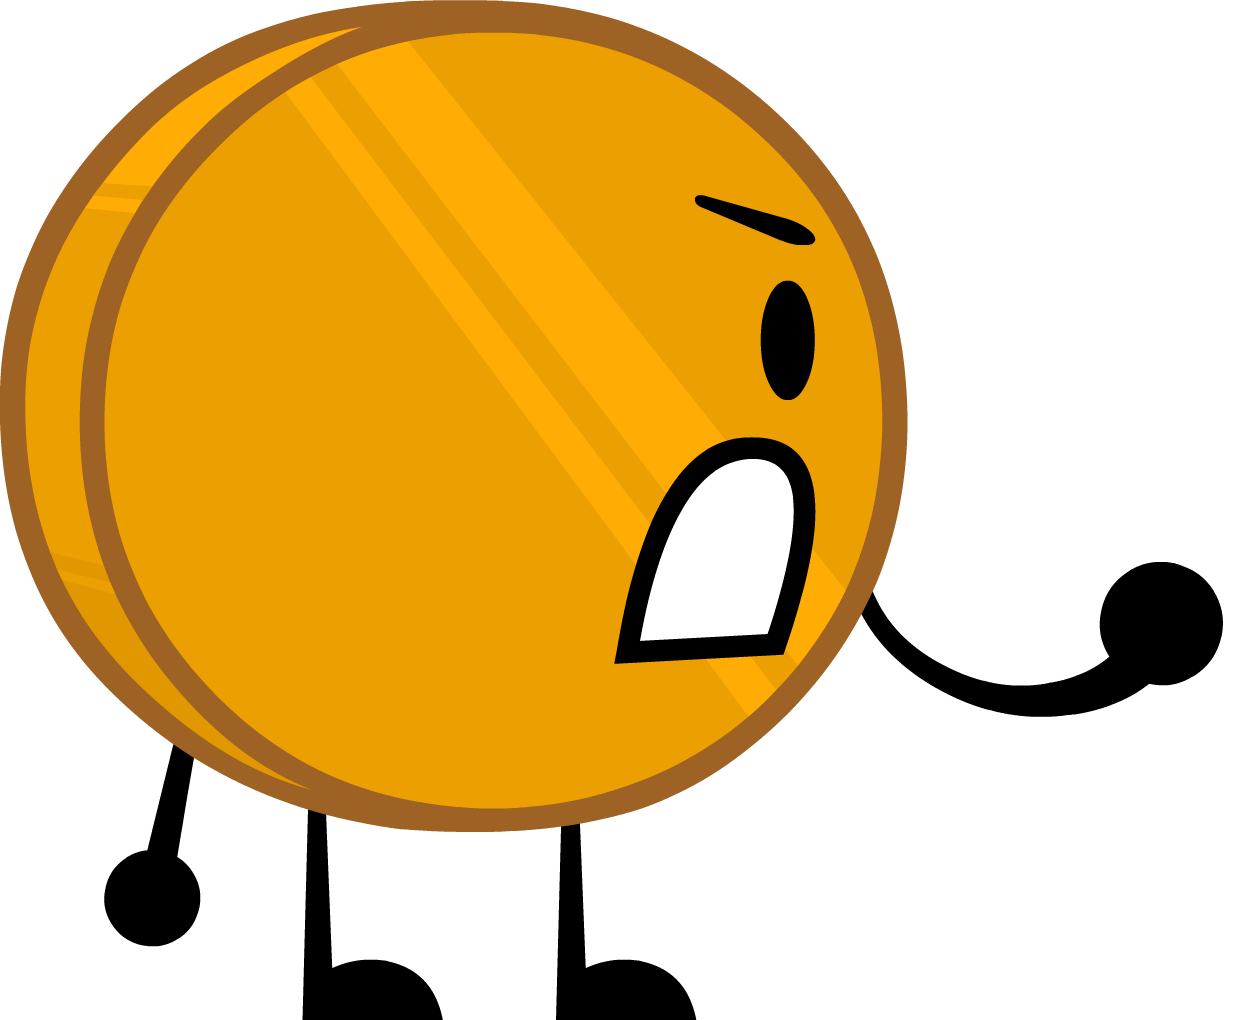 Glue clipart bfdi. Coiny battle for dream